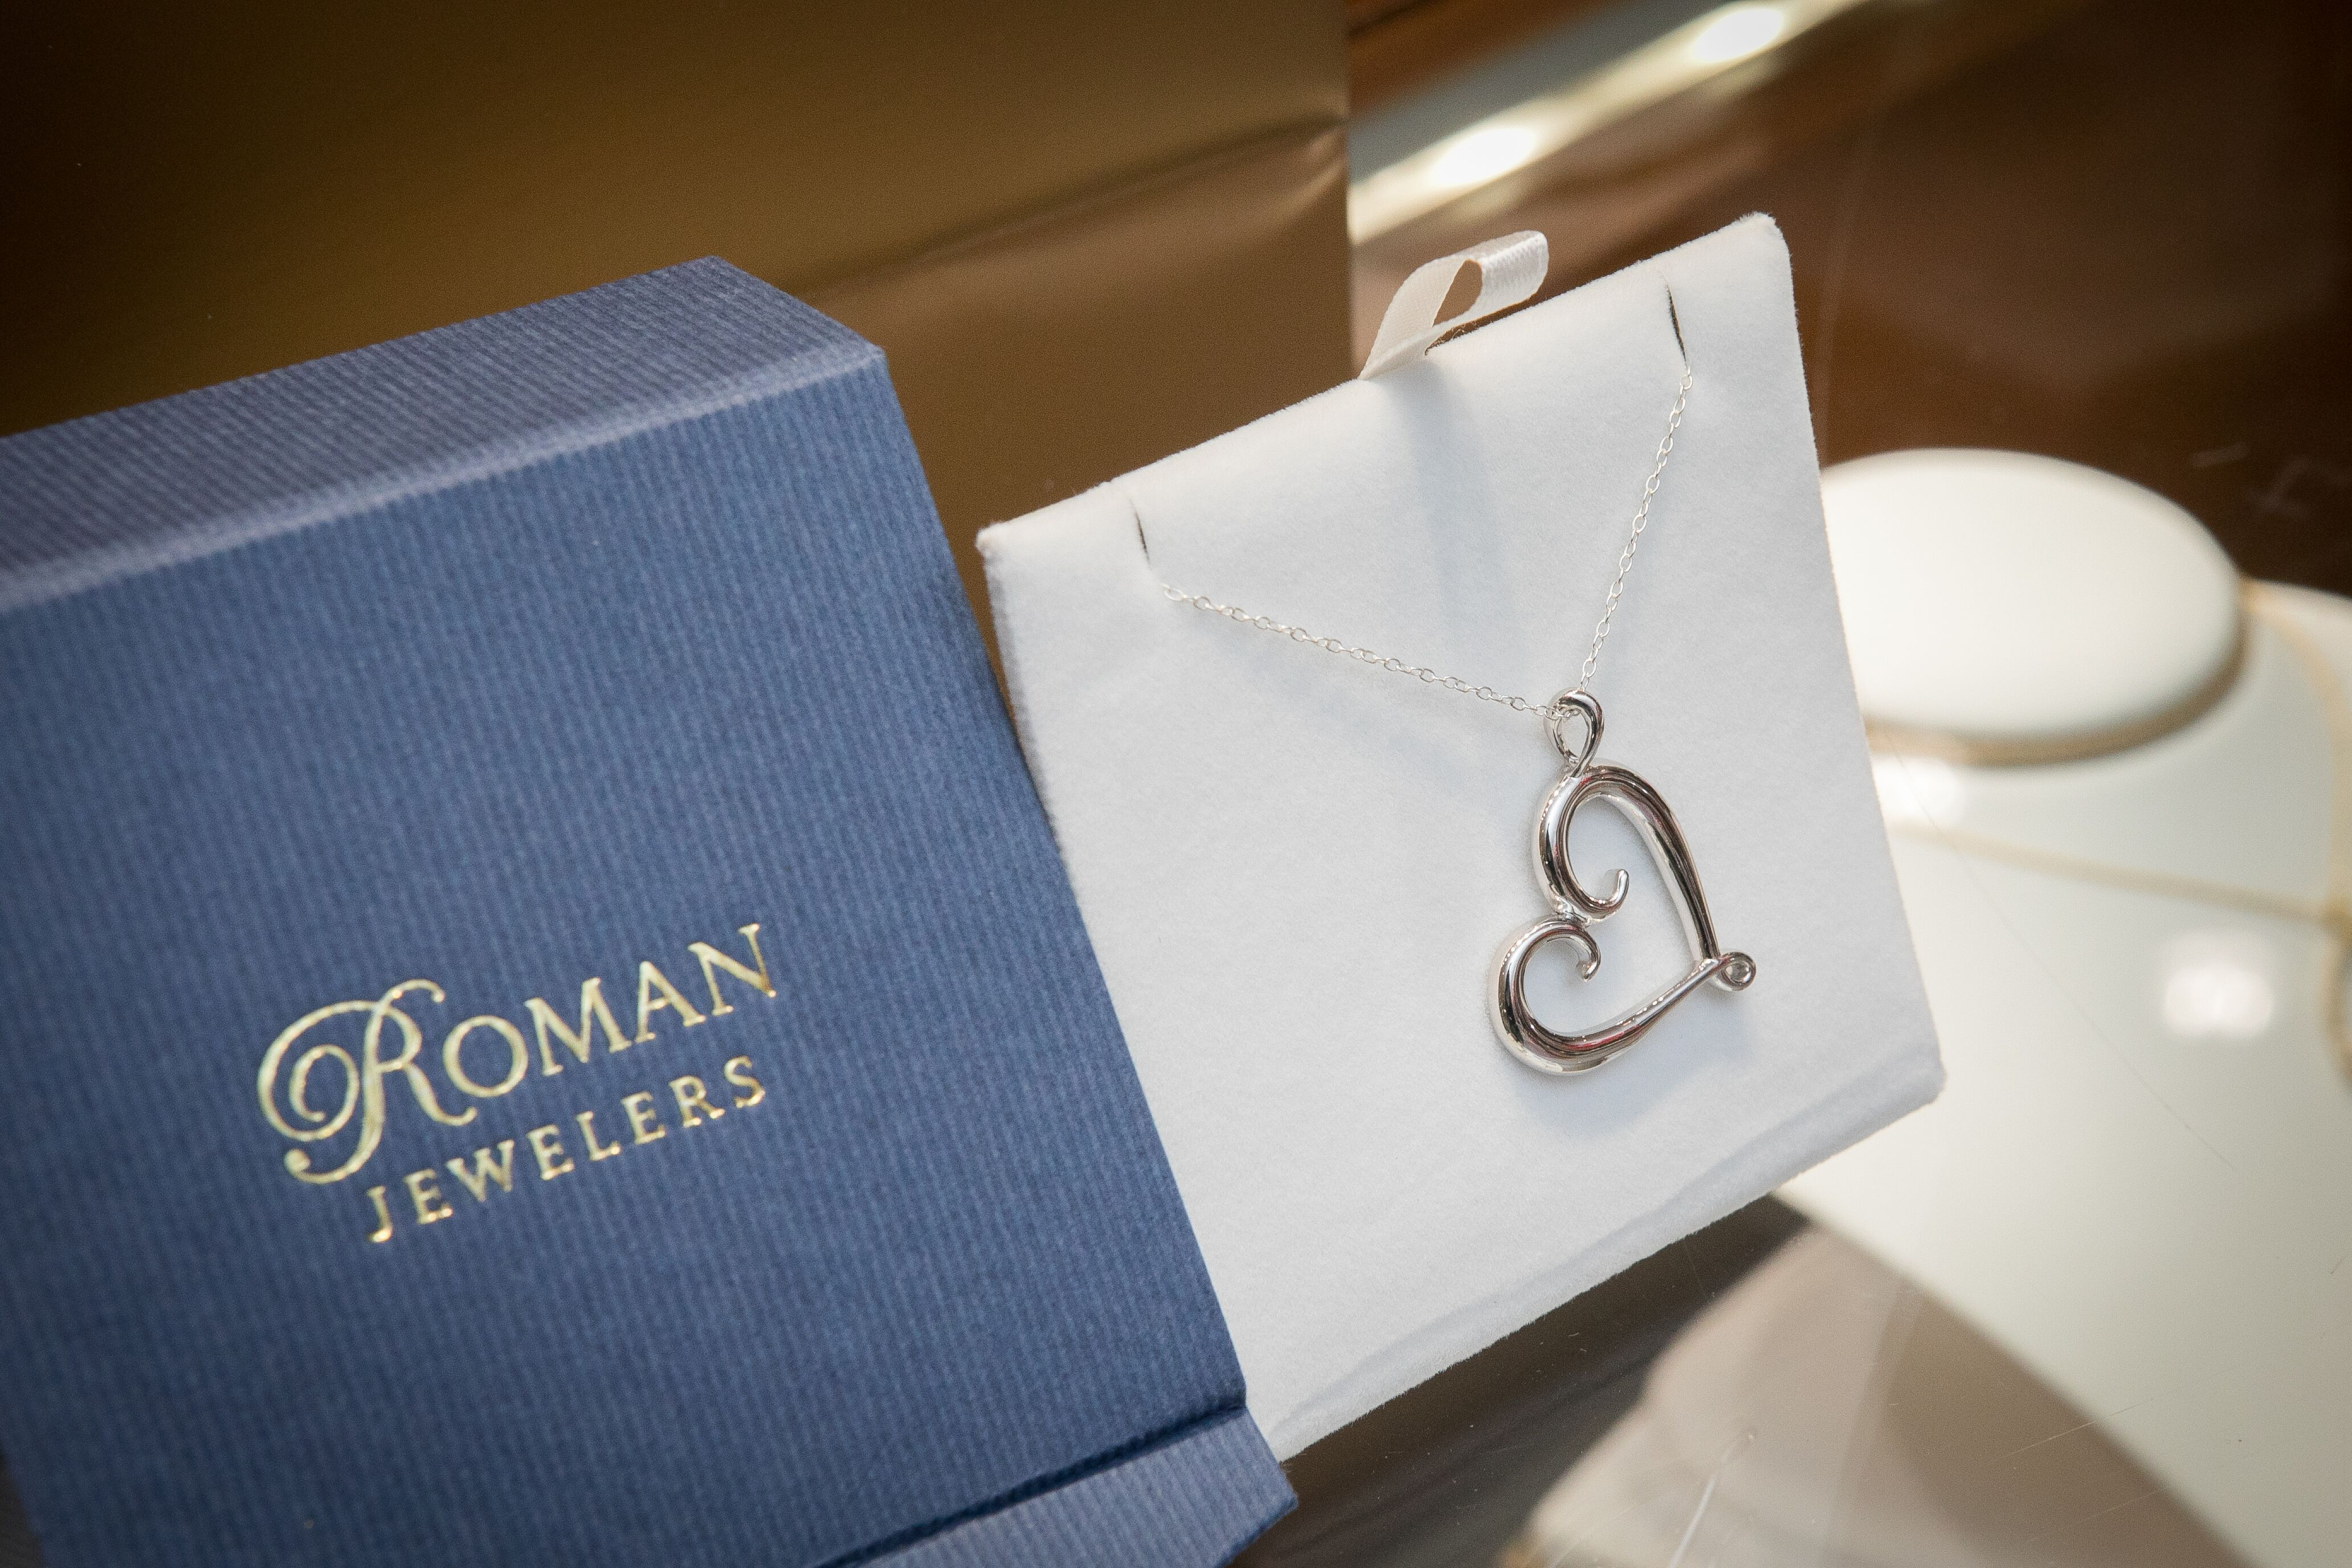 """Roman Jewelers """"Shares their Heart"""" with Local Nonprofit Organizations and Together Raises nearly $5,000.00"""